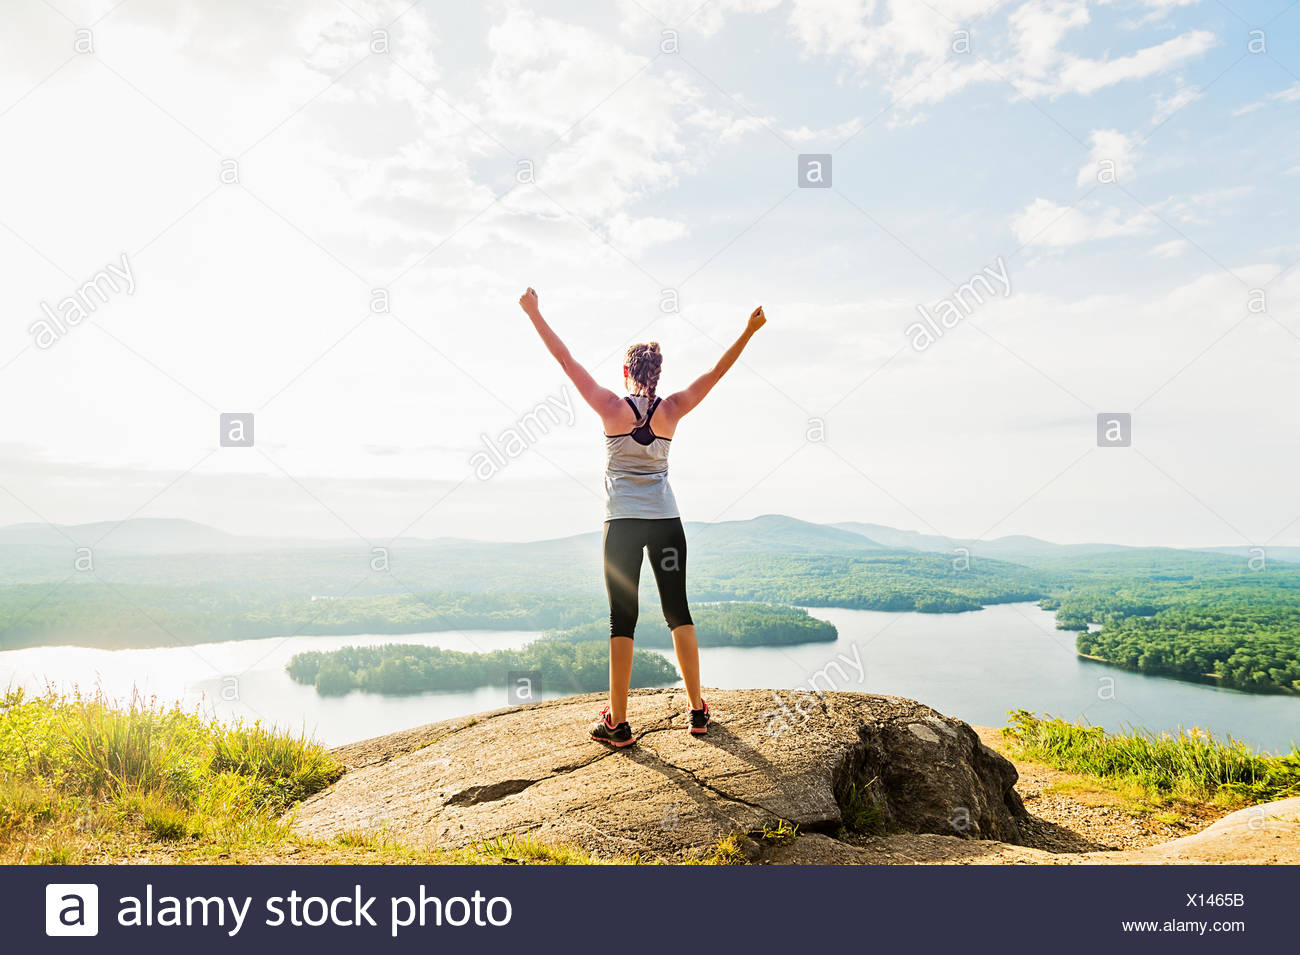 Young woman standing on top of mountain with outstretched arms, rear view - Stock Image